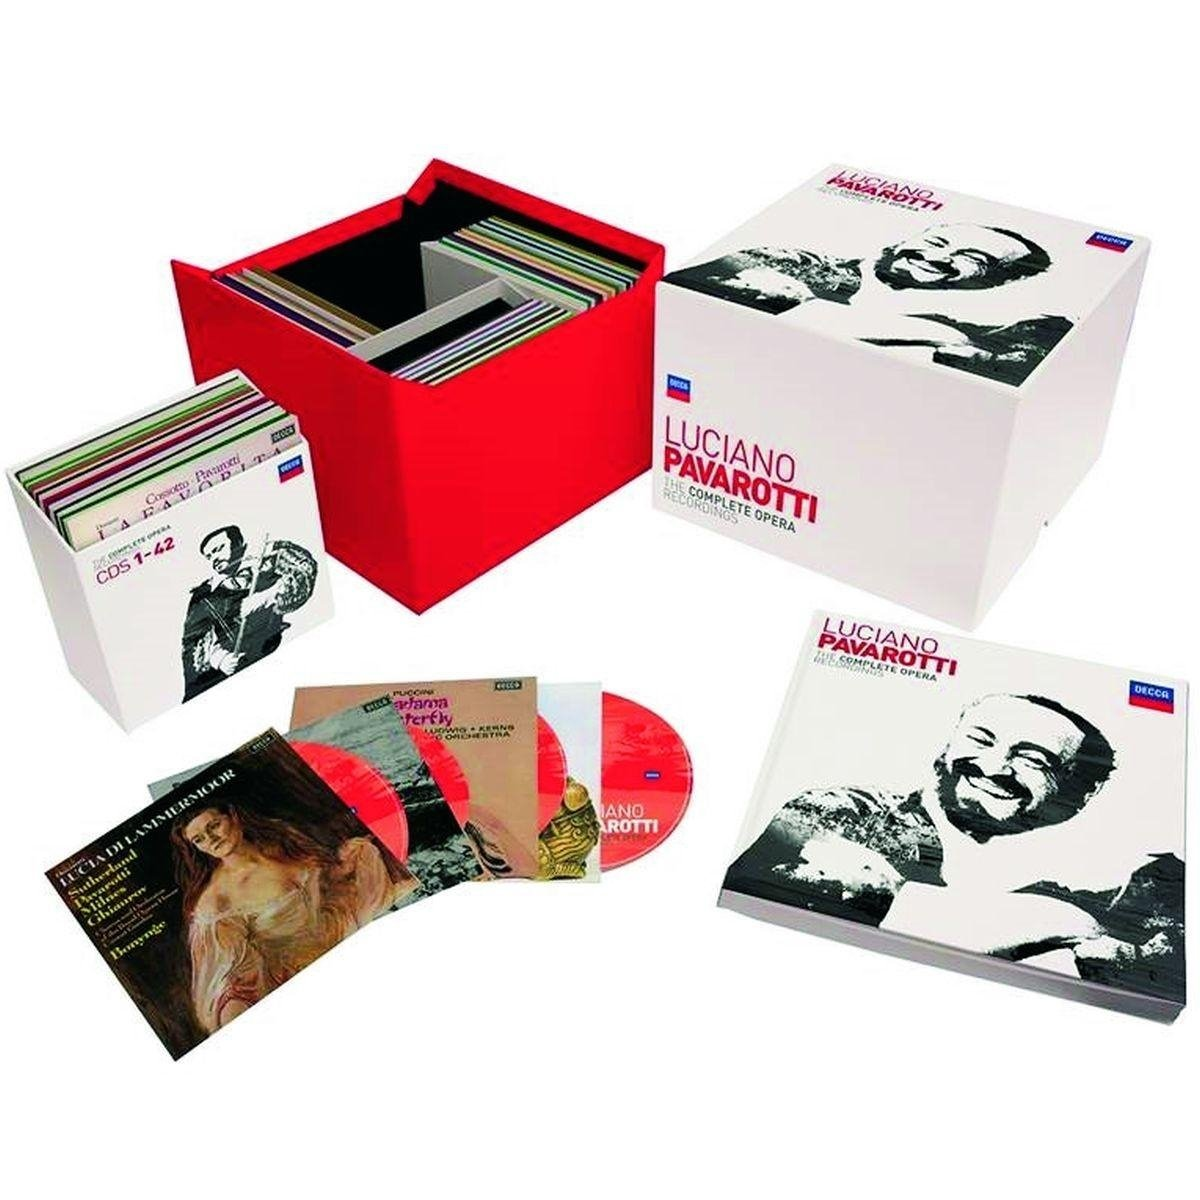 Pavarotti: The Complete Opera Edition  Decca